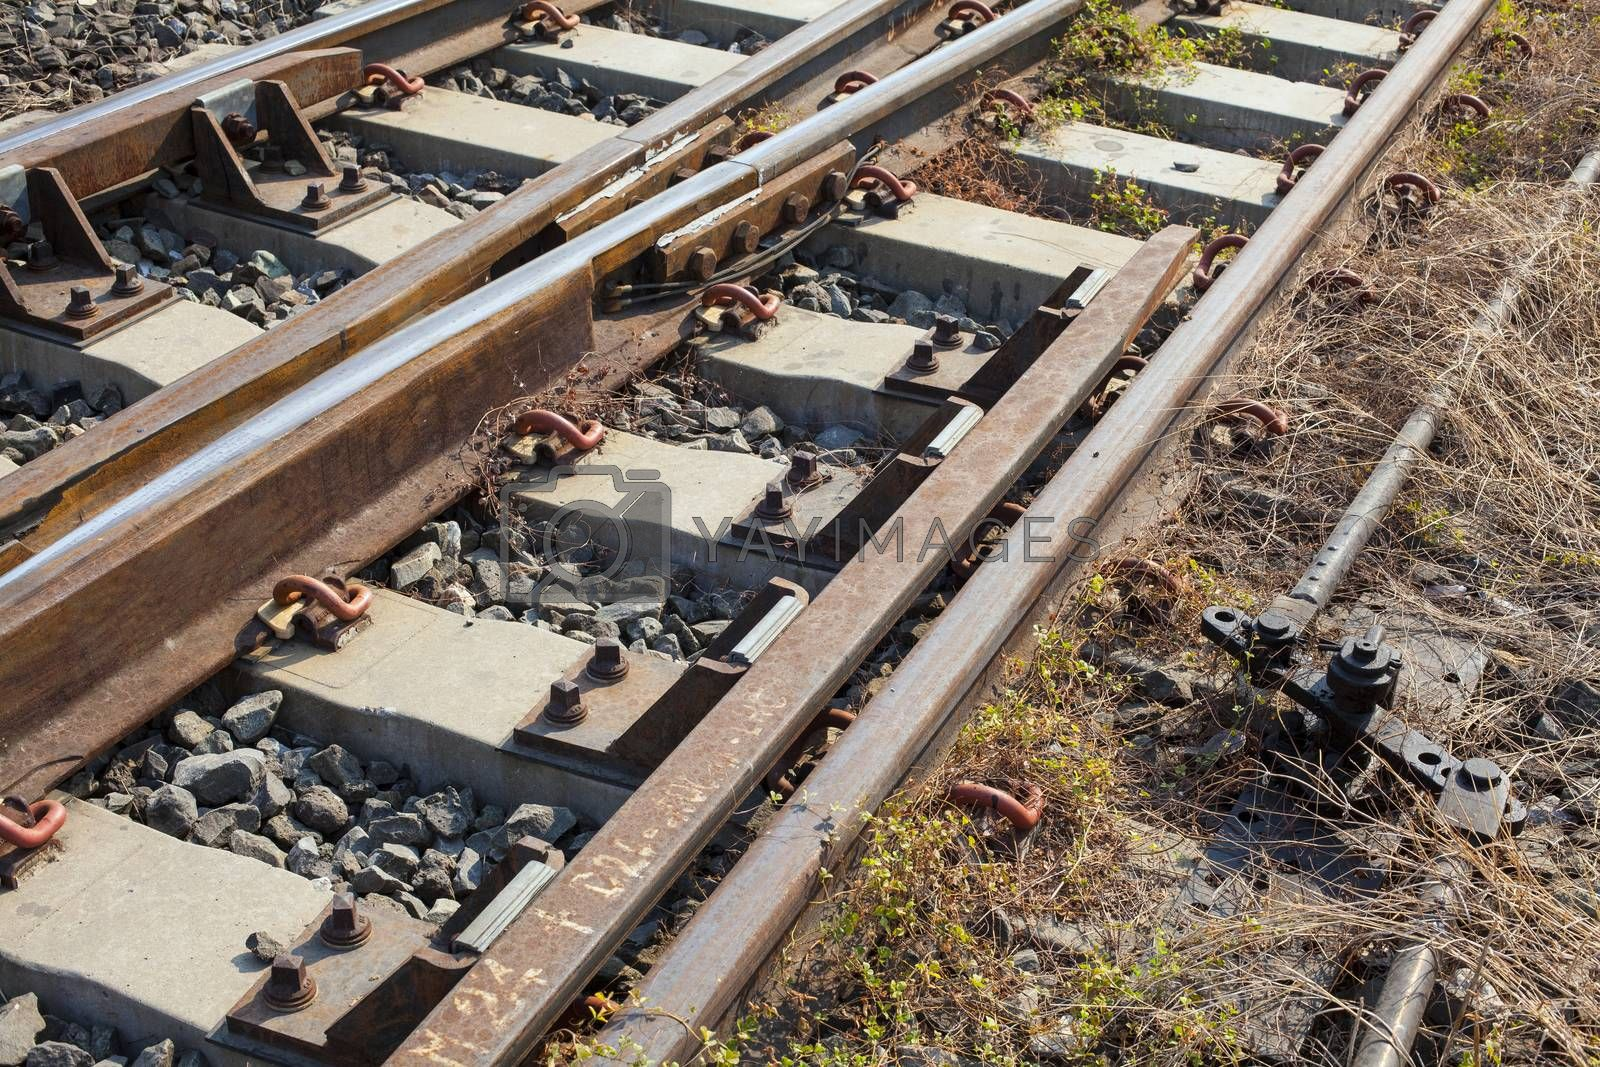 Angle shot of a rusty but still usable railway